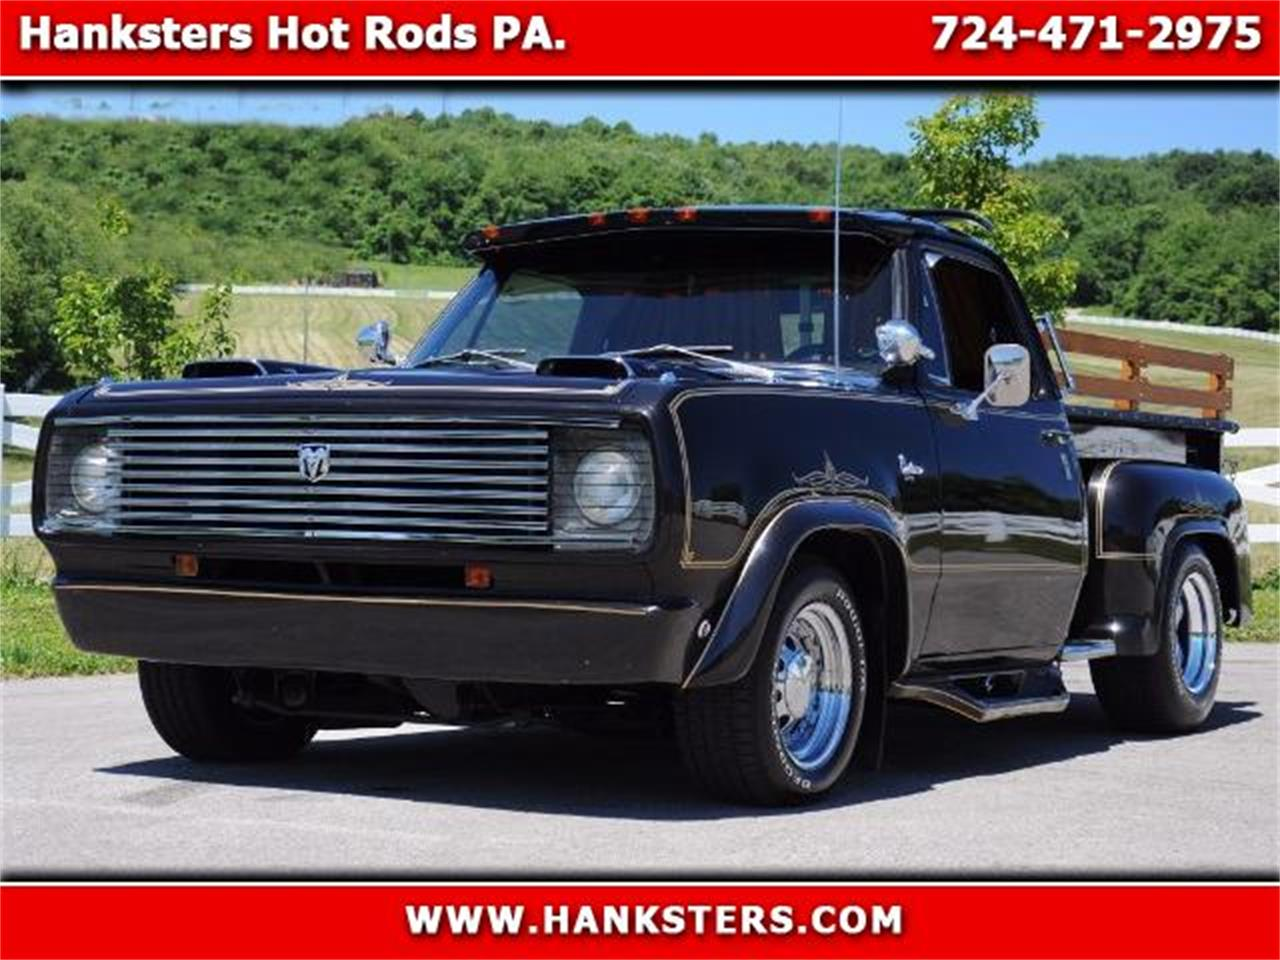 Large Picture of '77 Dodge Pickup located in Pennsylvania - L5P0